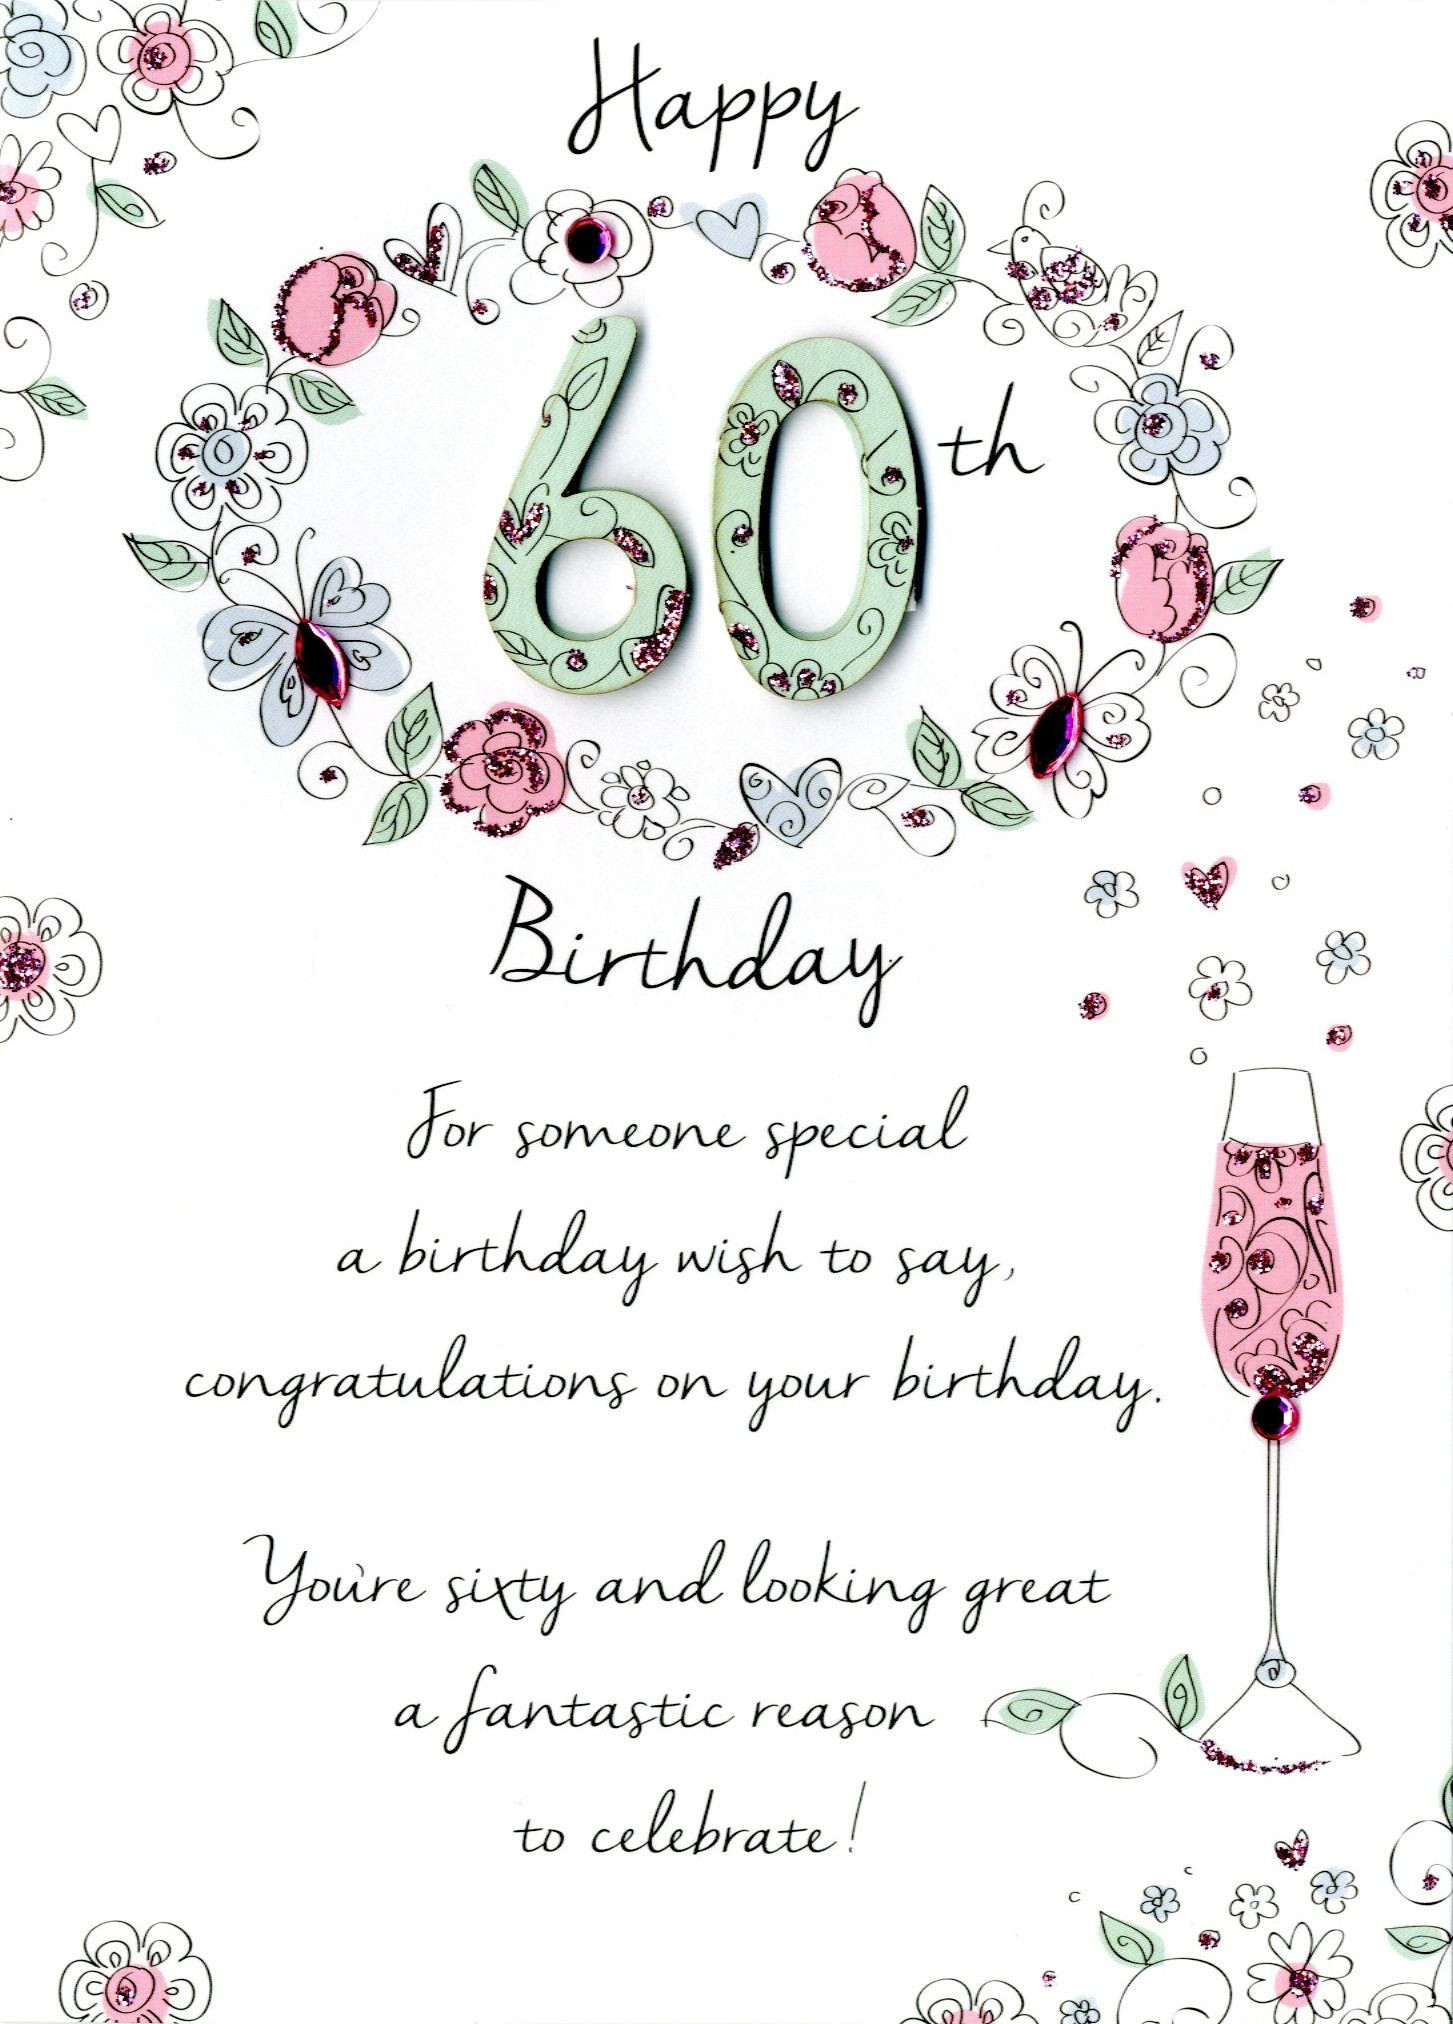 Best ideas about 60th Birthday Wishes For Friend . Save or Pin Afbeeldingsresultaat voor 60th birthday wishes Now.